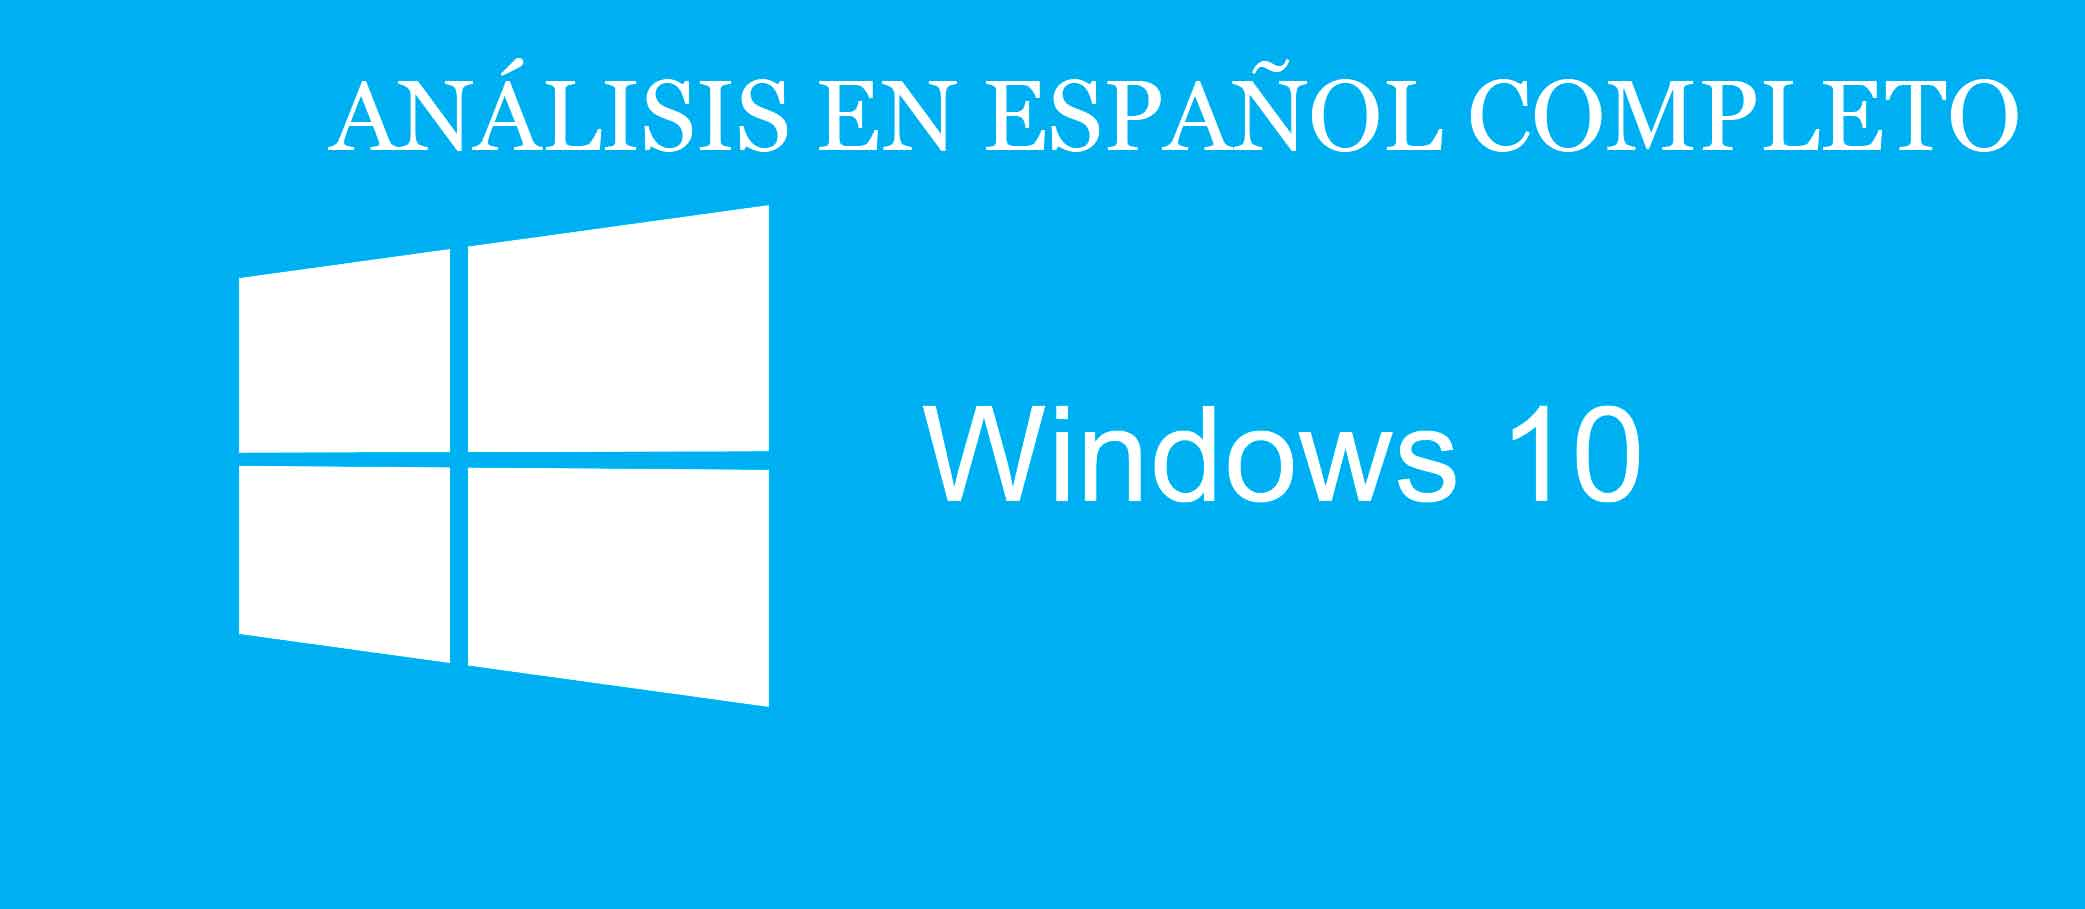 windows 10 ANALISIS COMPLETO